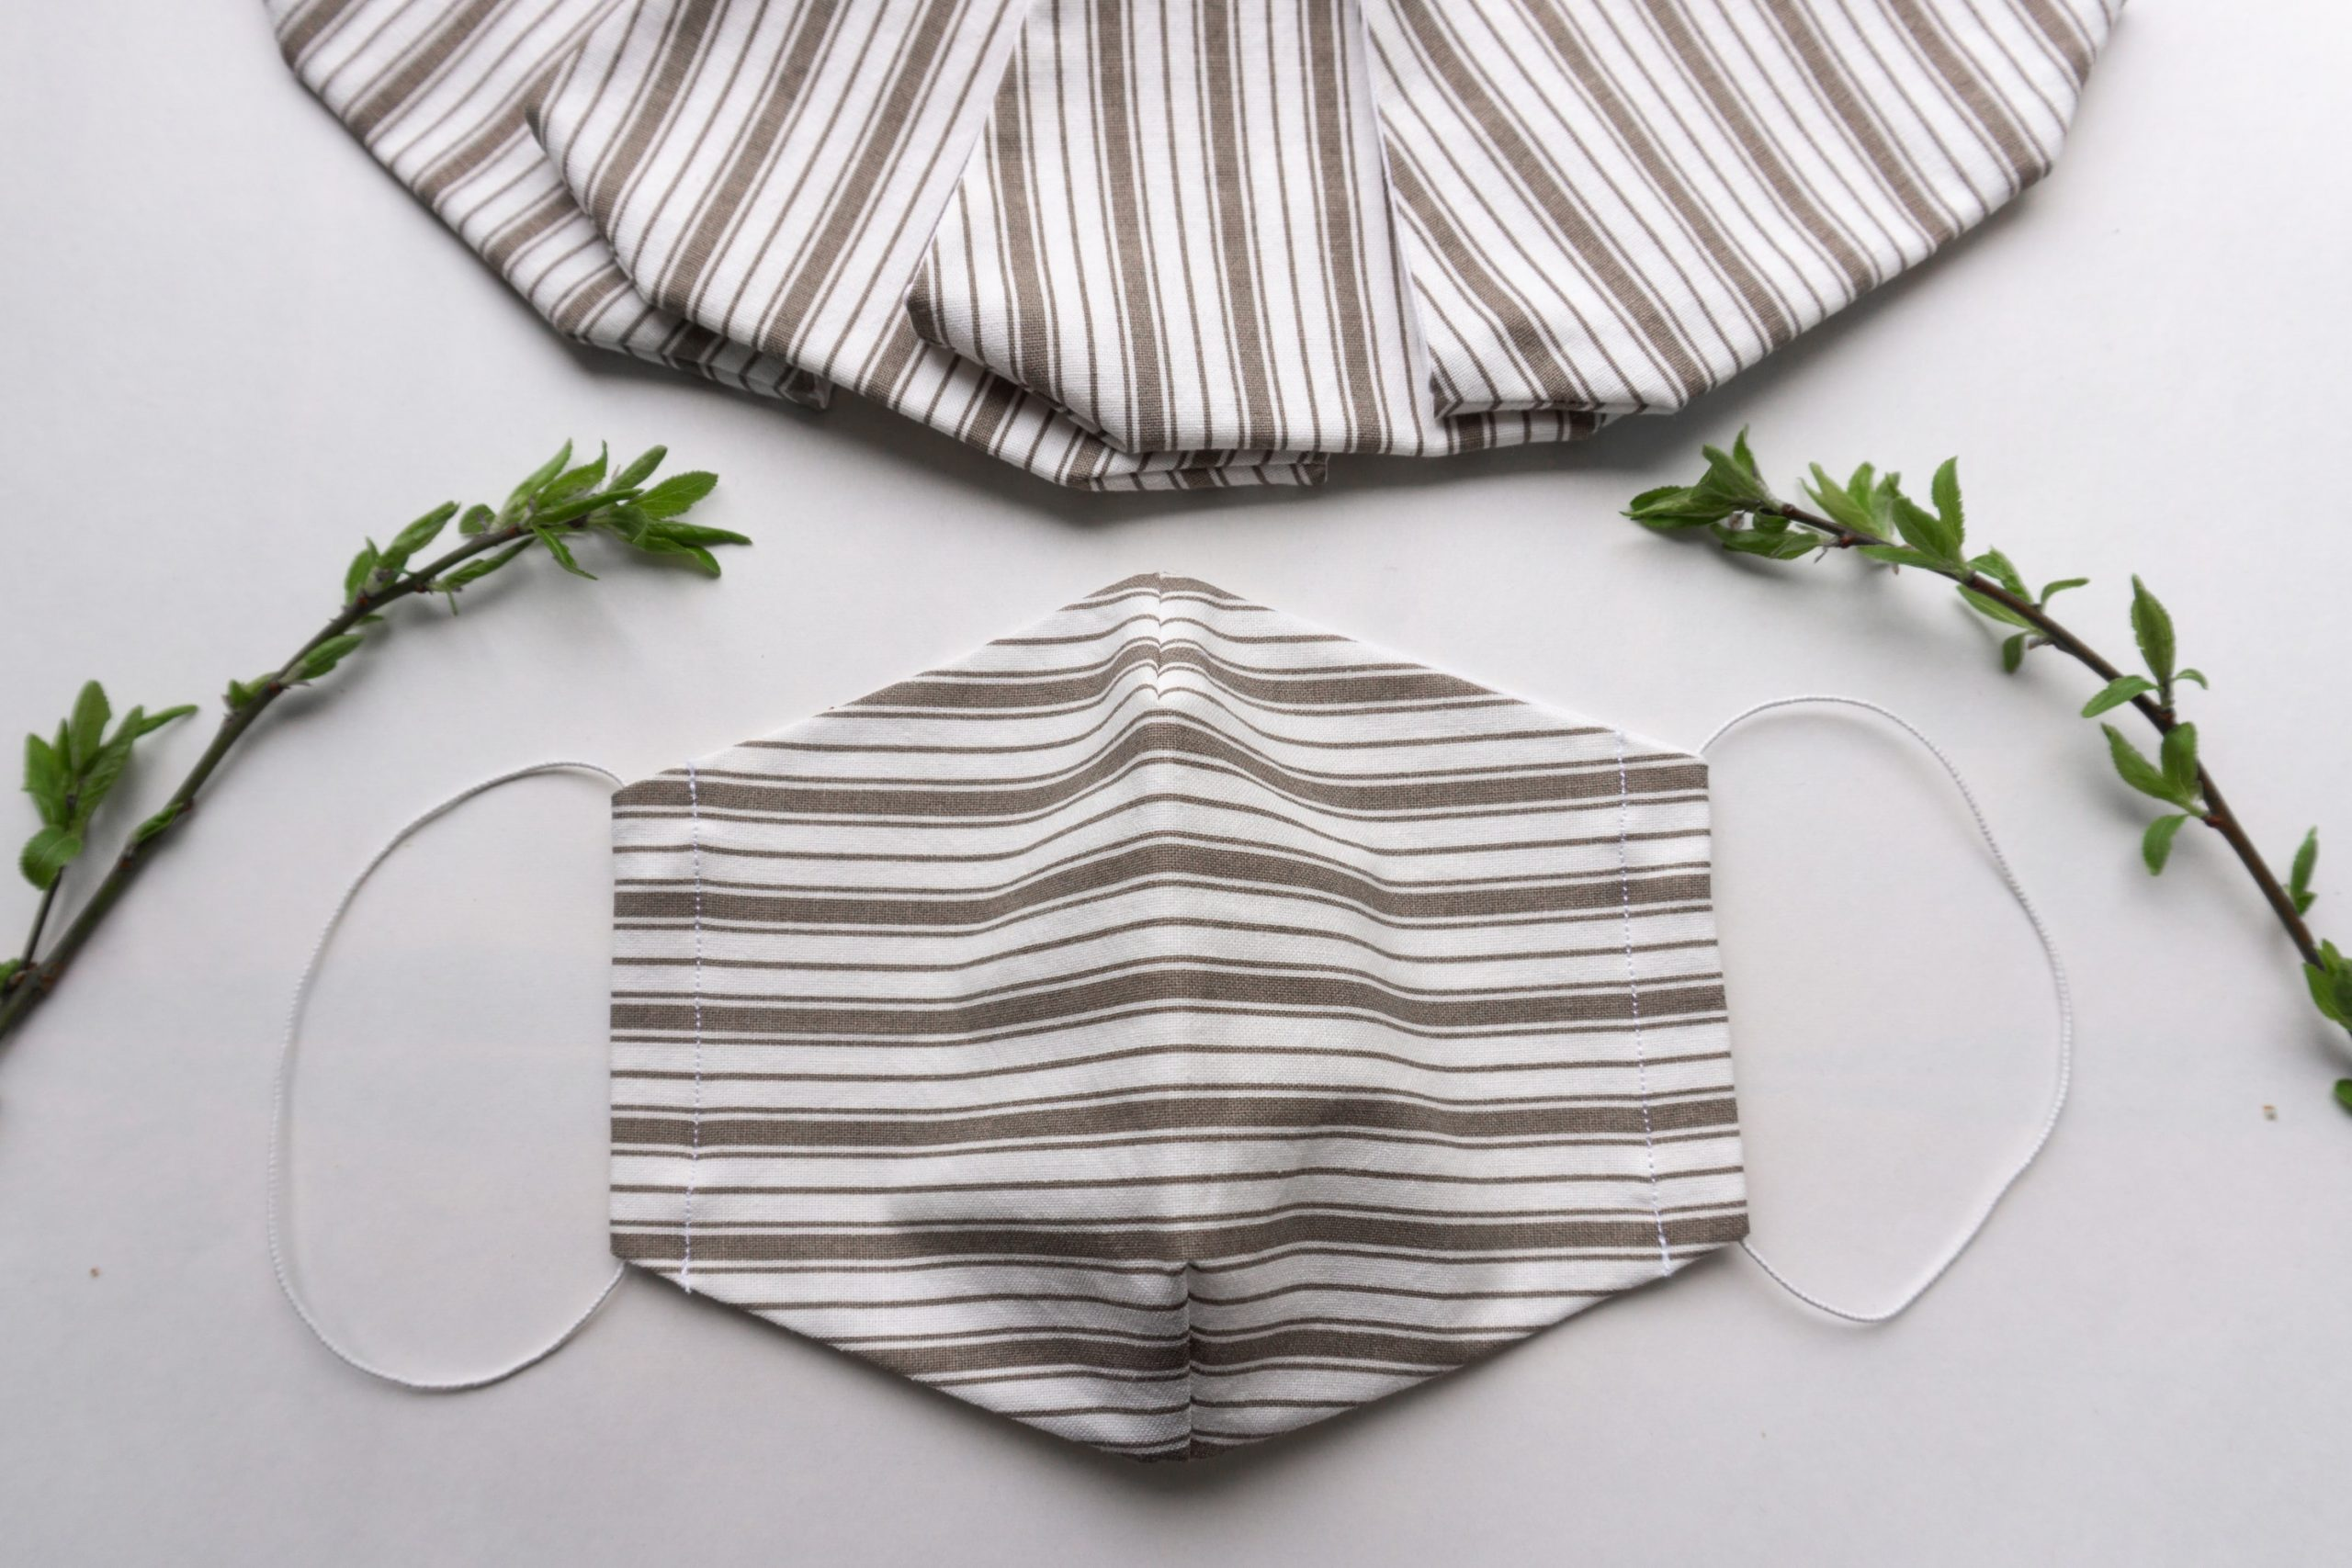 Striped reusable masks on the table